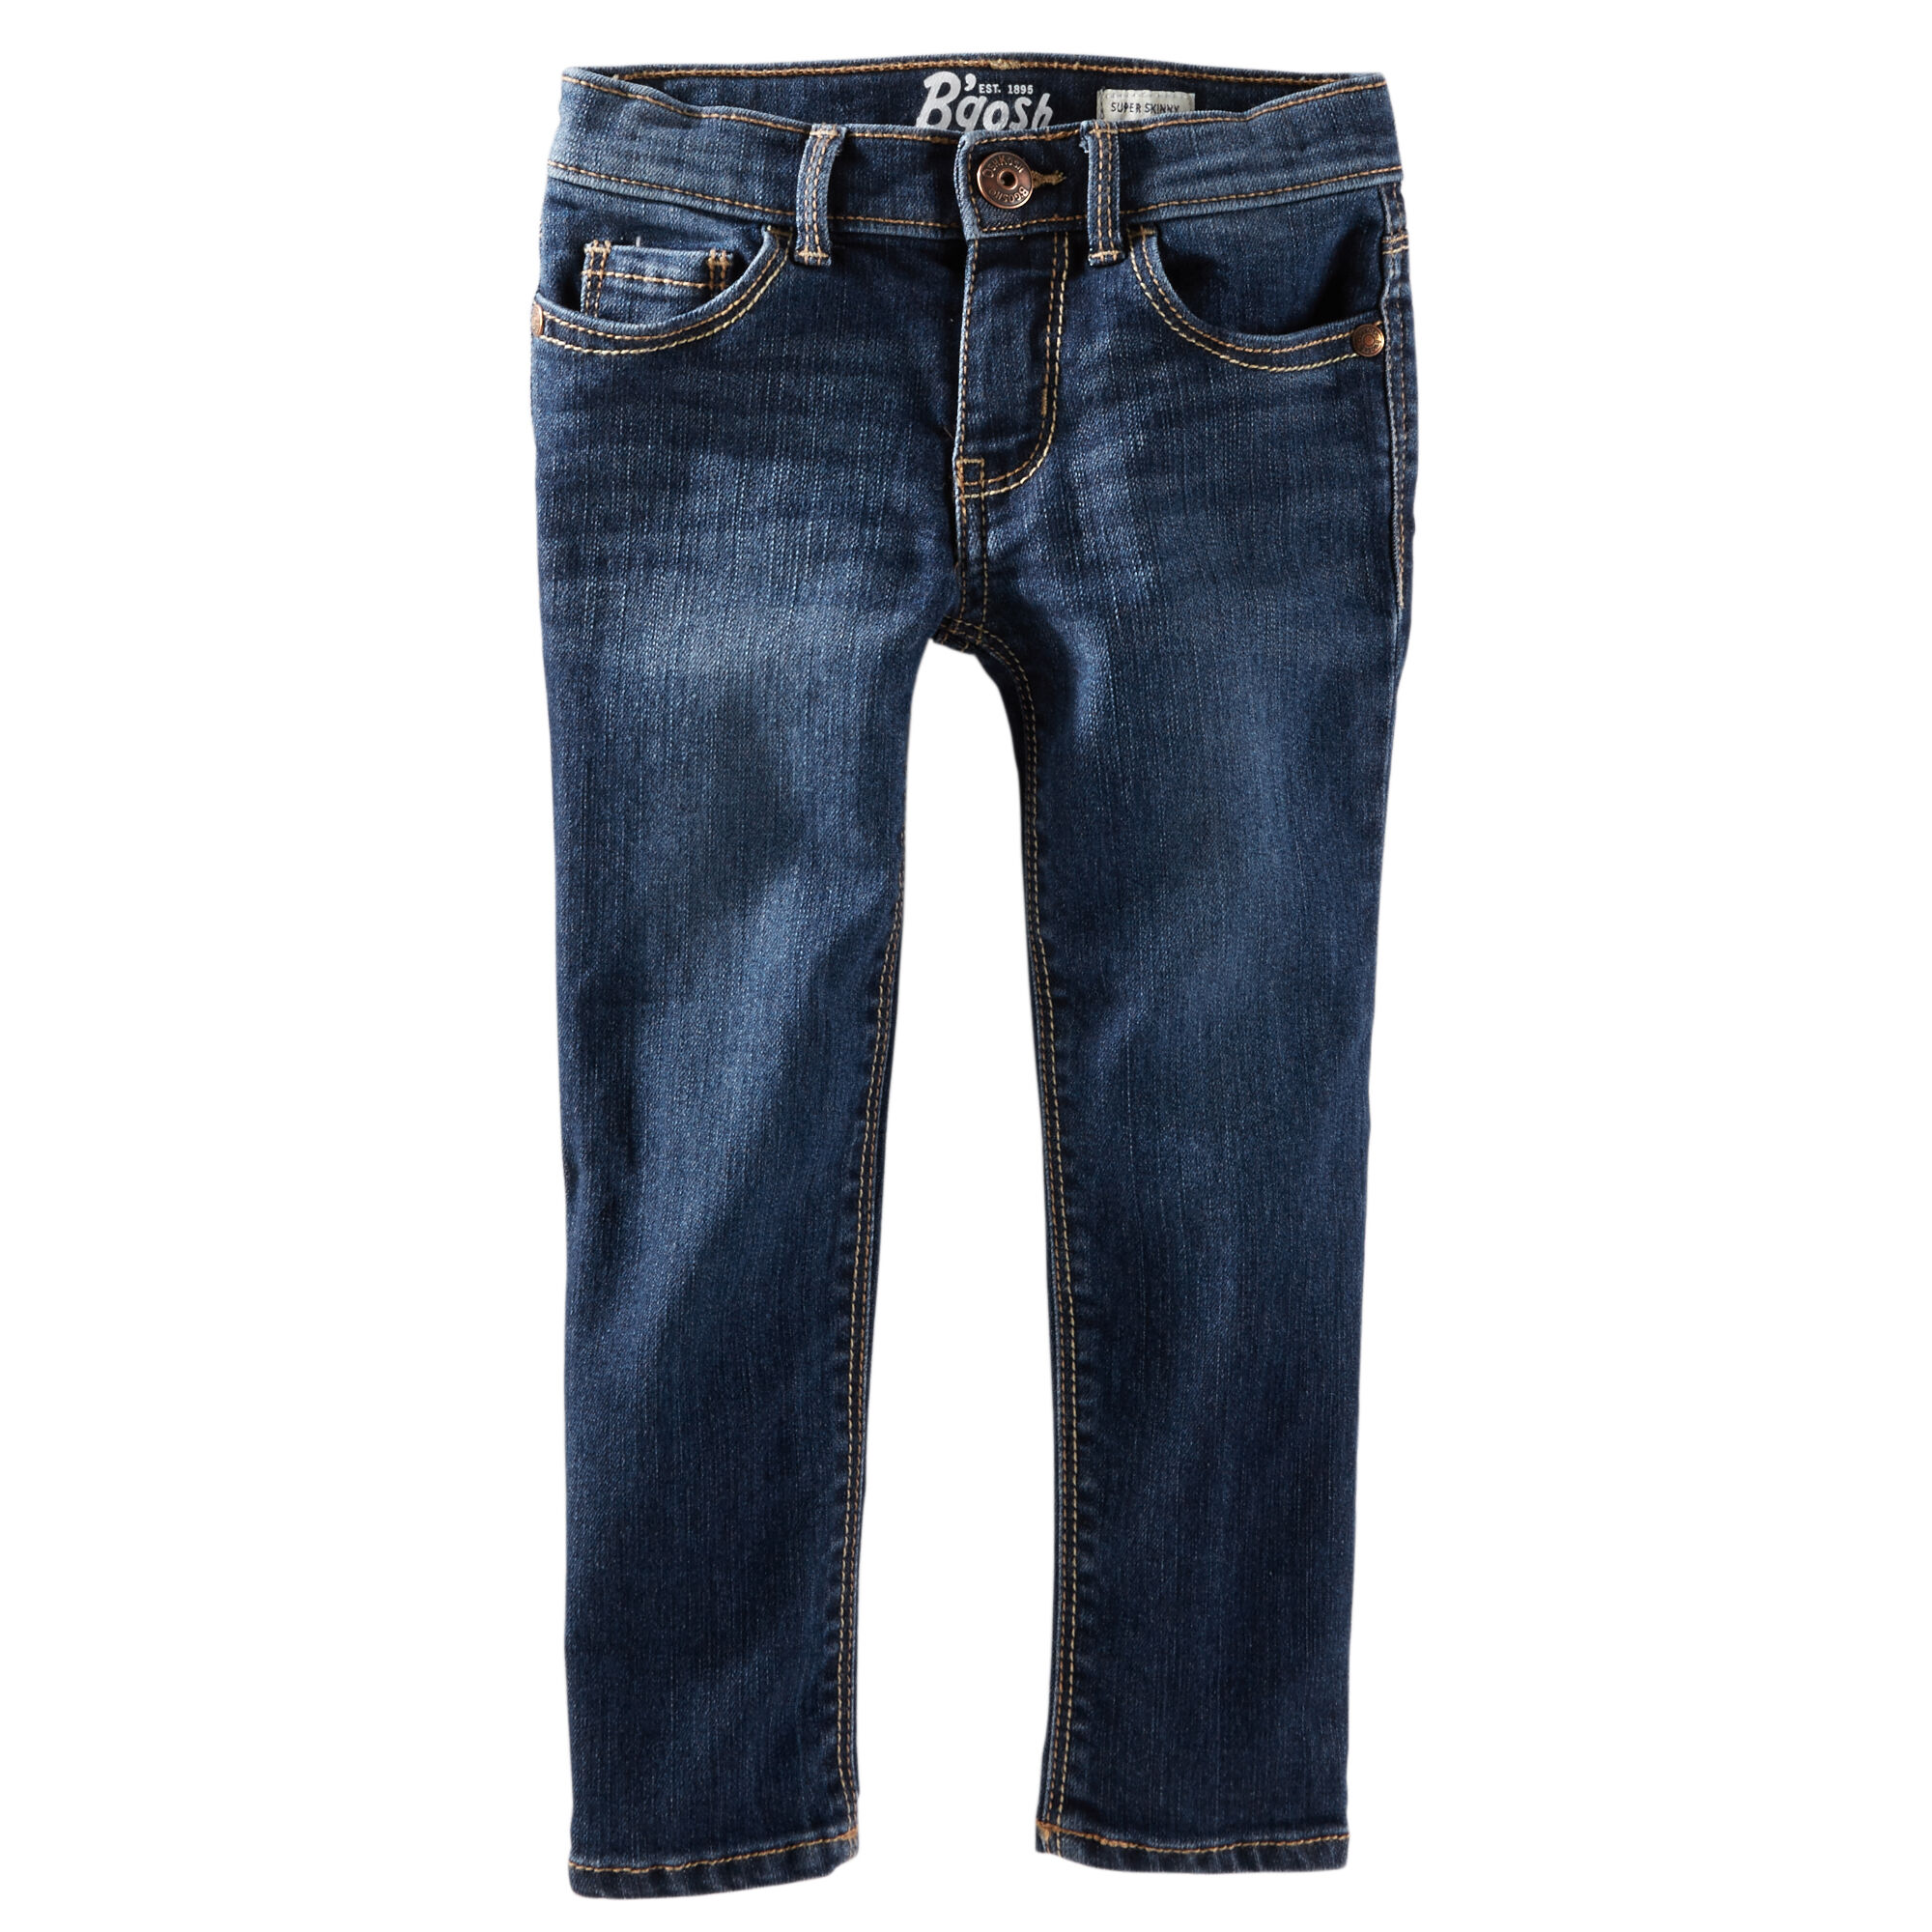 Colored skinny jeans for toddlers